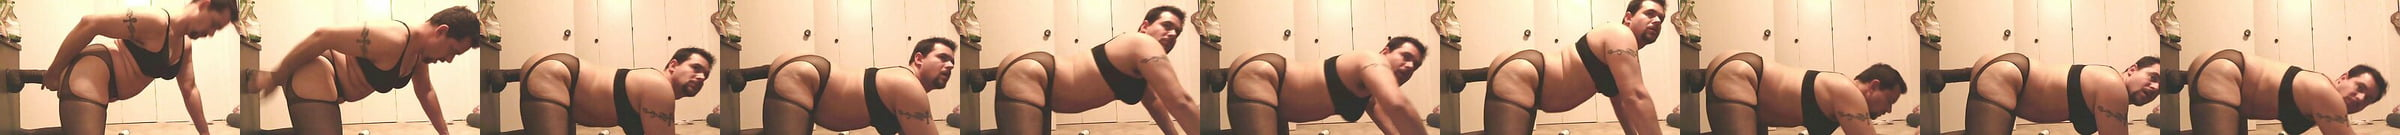 Celeb Nude Homosexuell Bad Pictures